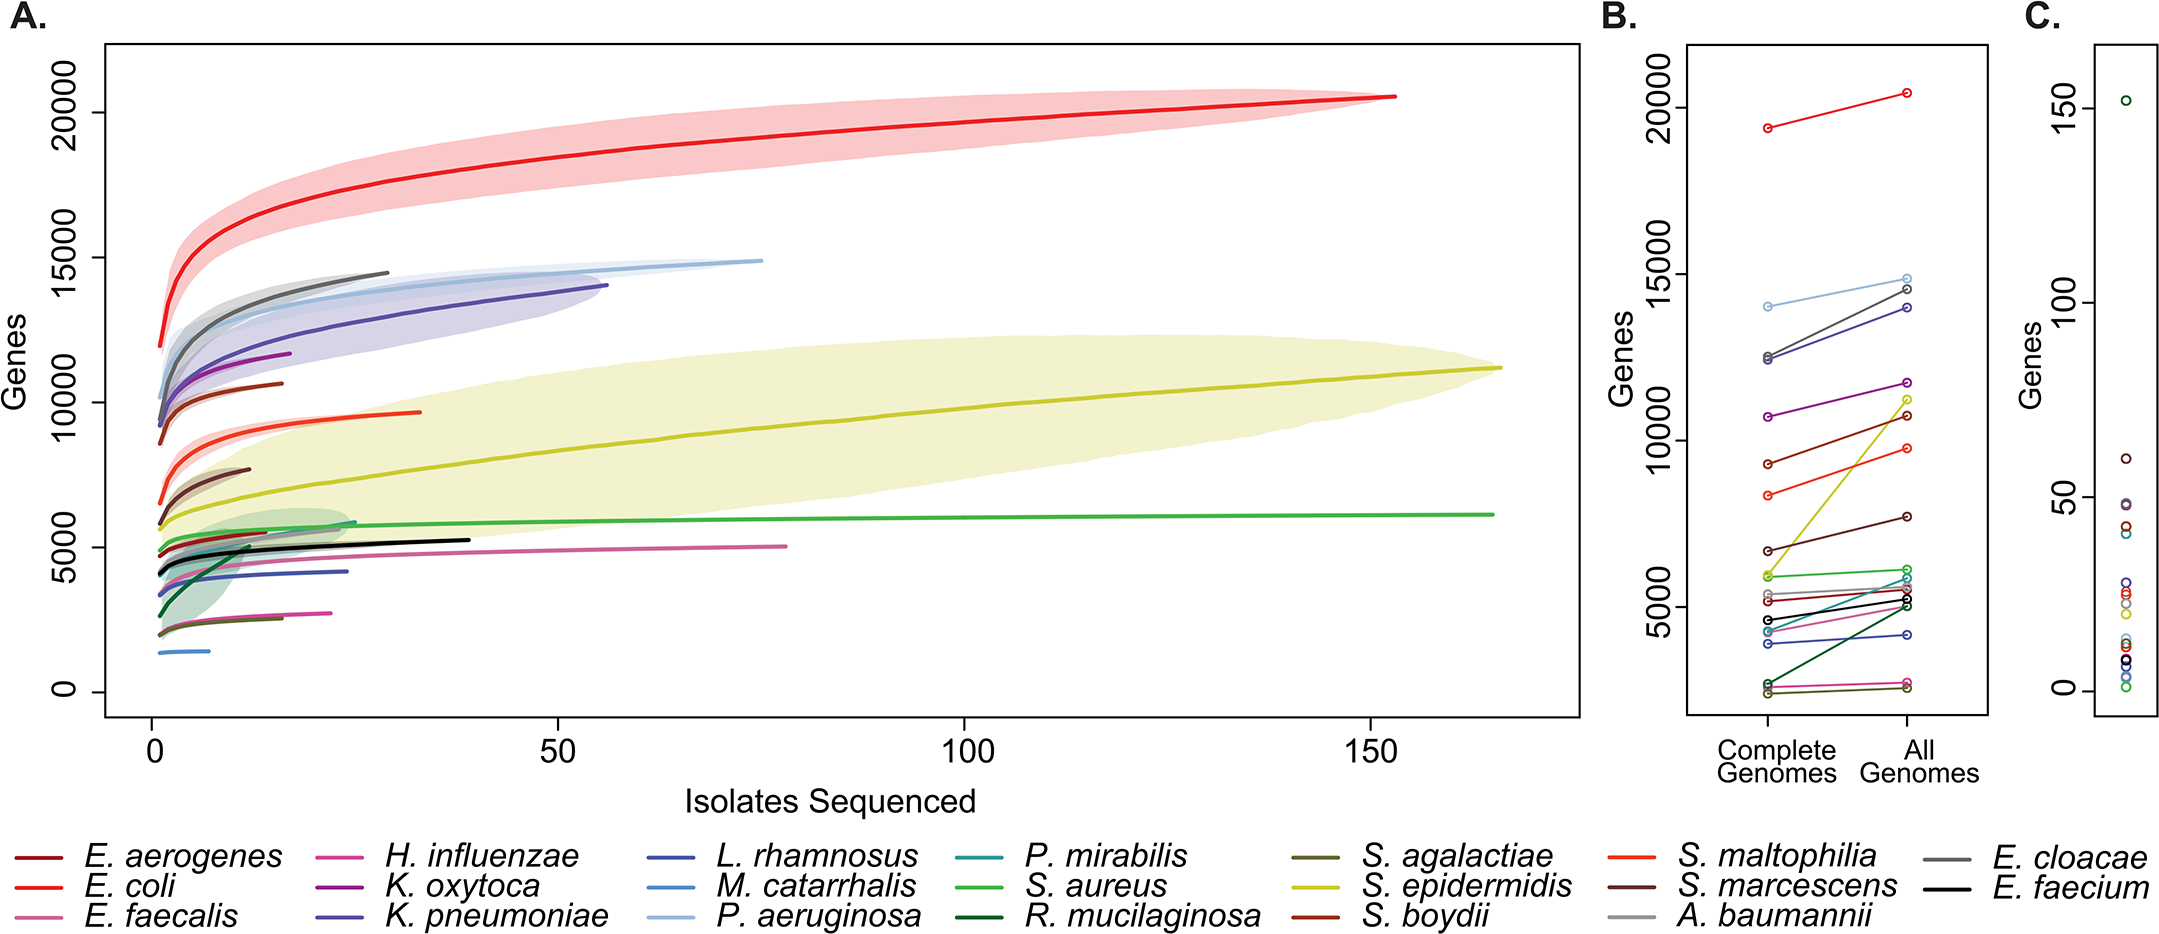 Pan-genome curves of the most abundant organisms recovered from clinical sampling.